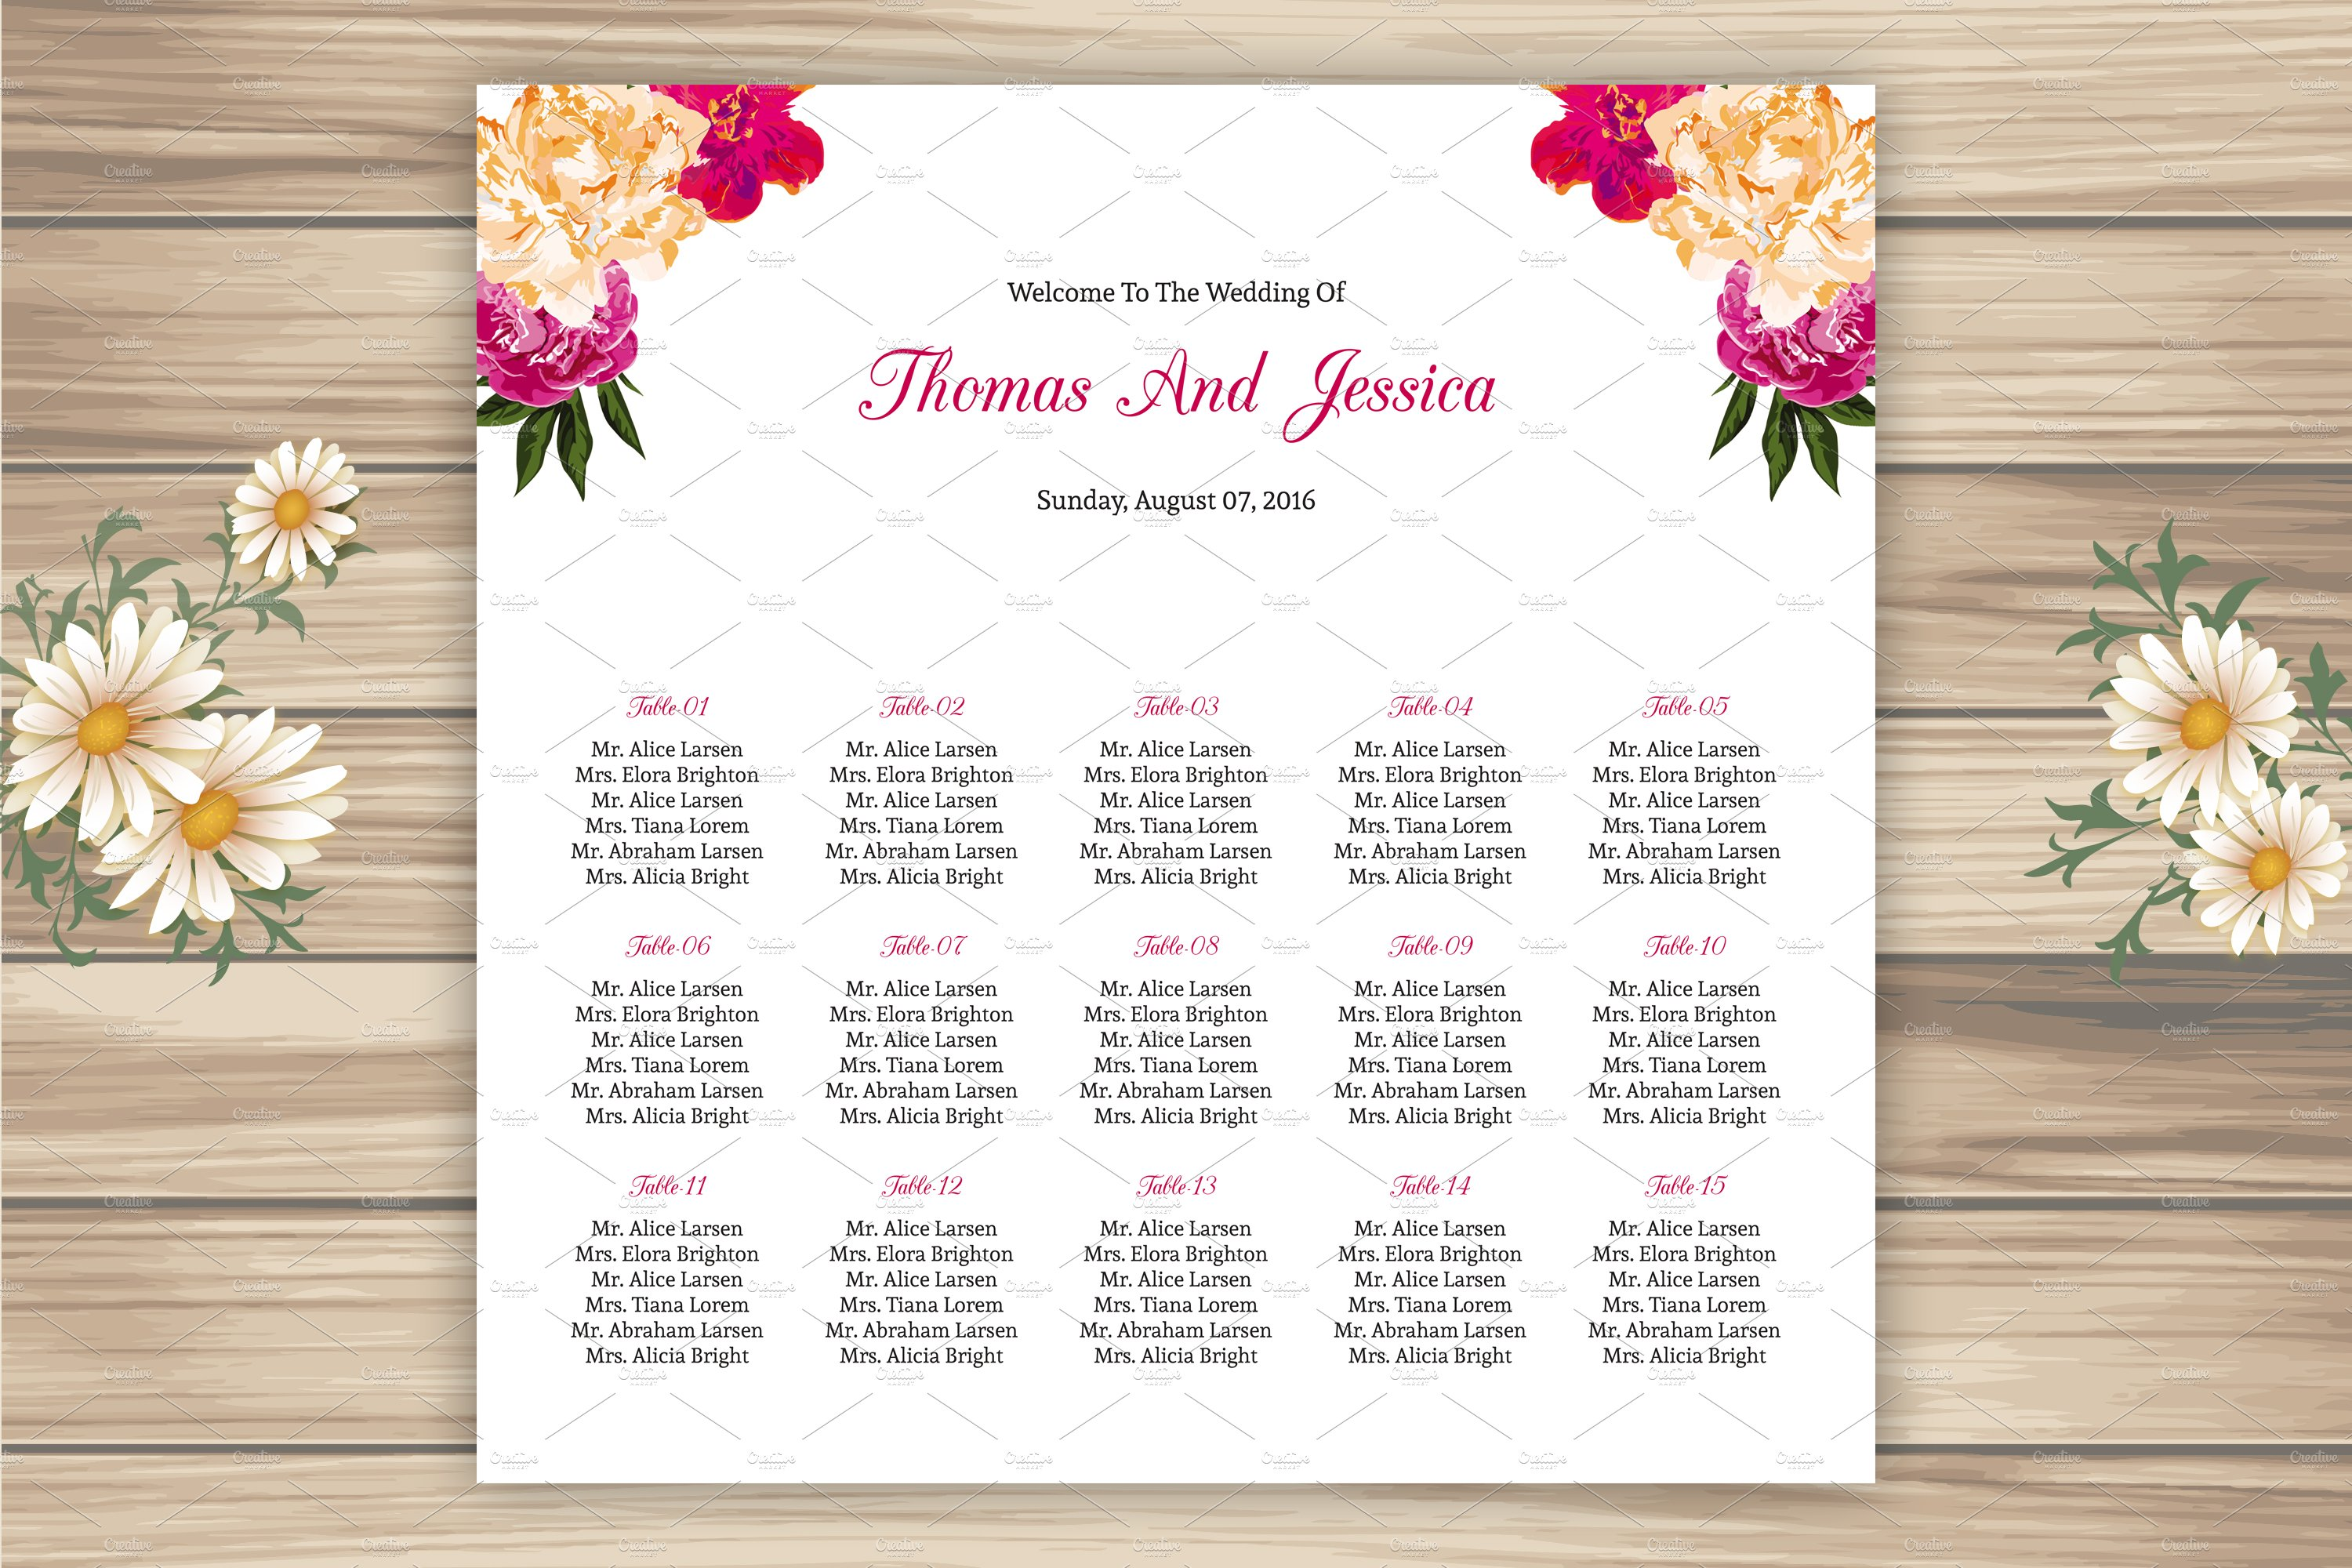 Wedding seating chart template stationery templates creative wedding seating chart template stationery templates creative market junglespirit Images